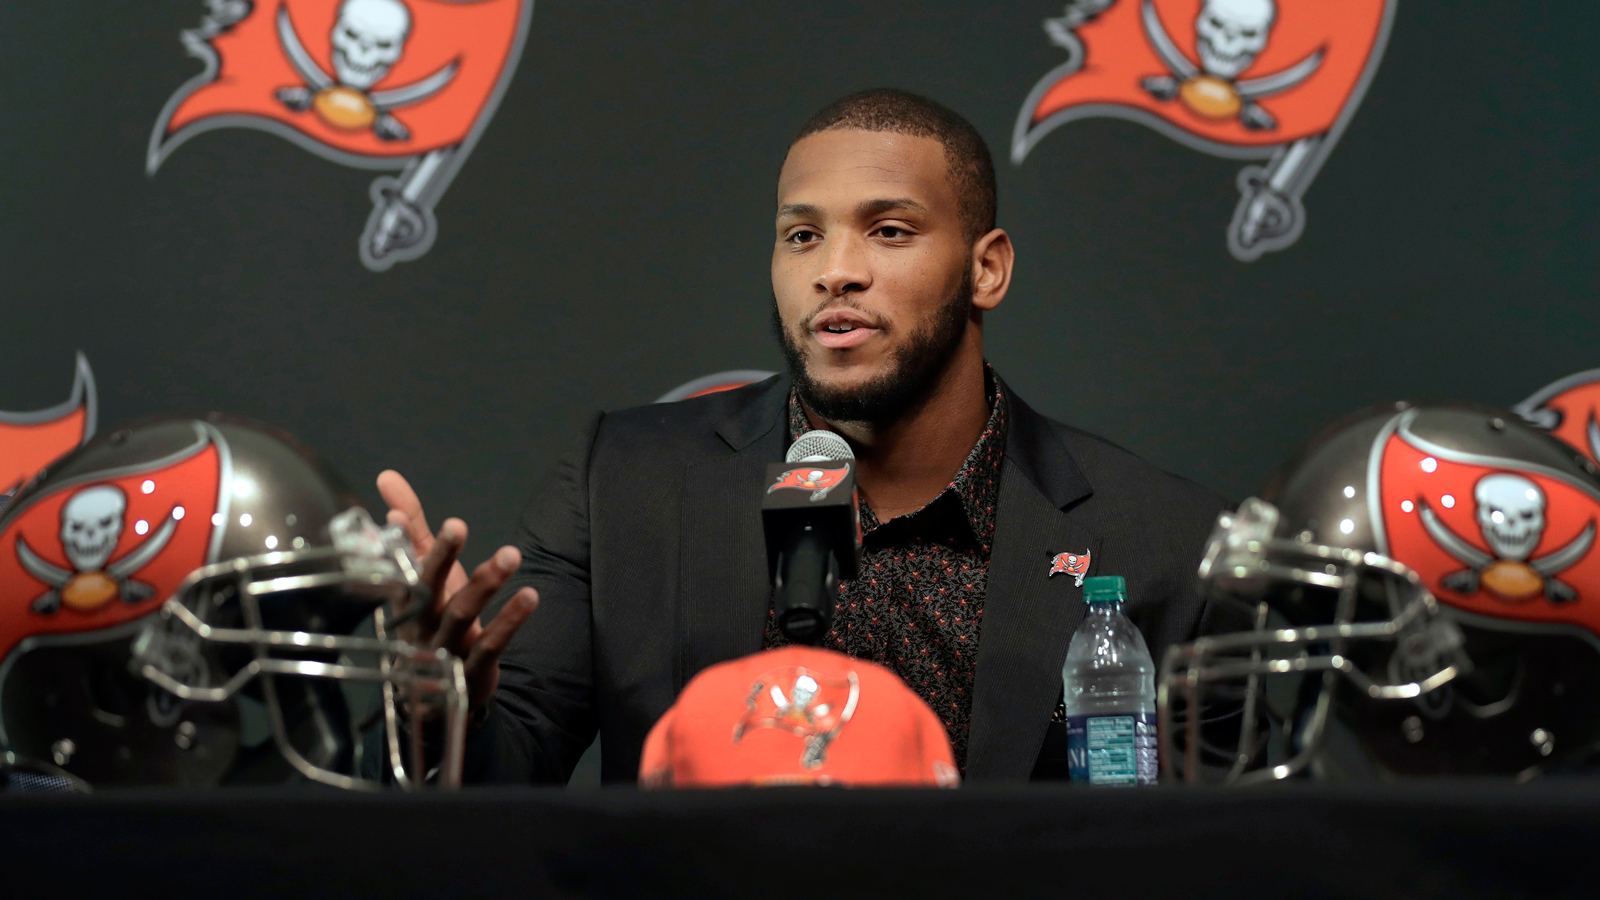 Tampa Bay Buccaneers 2017 first round draft pick O.J. Howard gestures as he speaks during an NFL football news conference Friday, April 28, 2017, in Tampa, Fla. Howard was a tight end at Alabama. (AP Photo/Chris O'Meara)